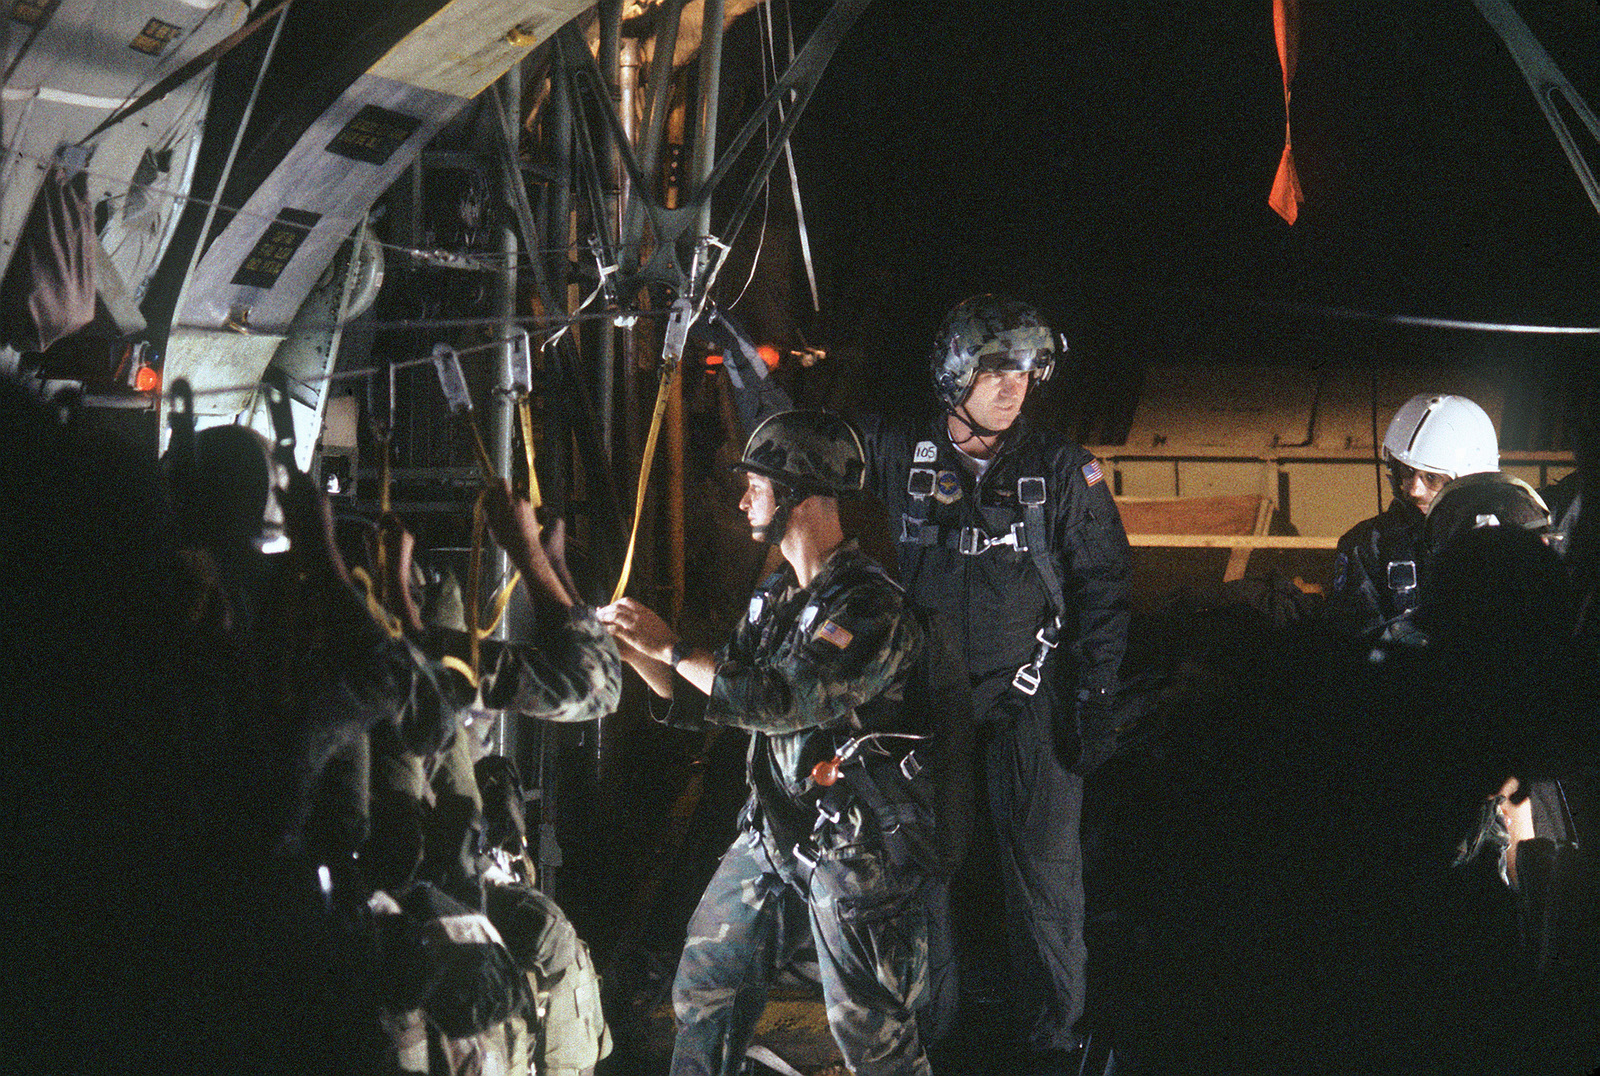 Members of the 509th Airborne Ranger Battalion prepare for an airdrop from a 37th Tactical Airlift Squadron C-130 Hercules aircraft during an operational readiness exercise